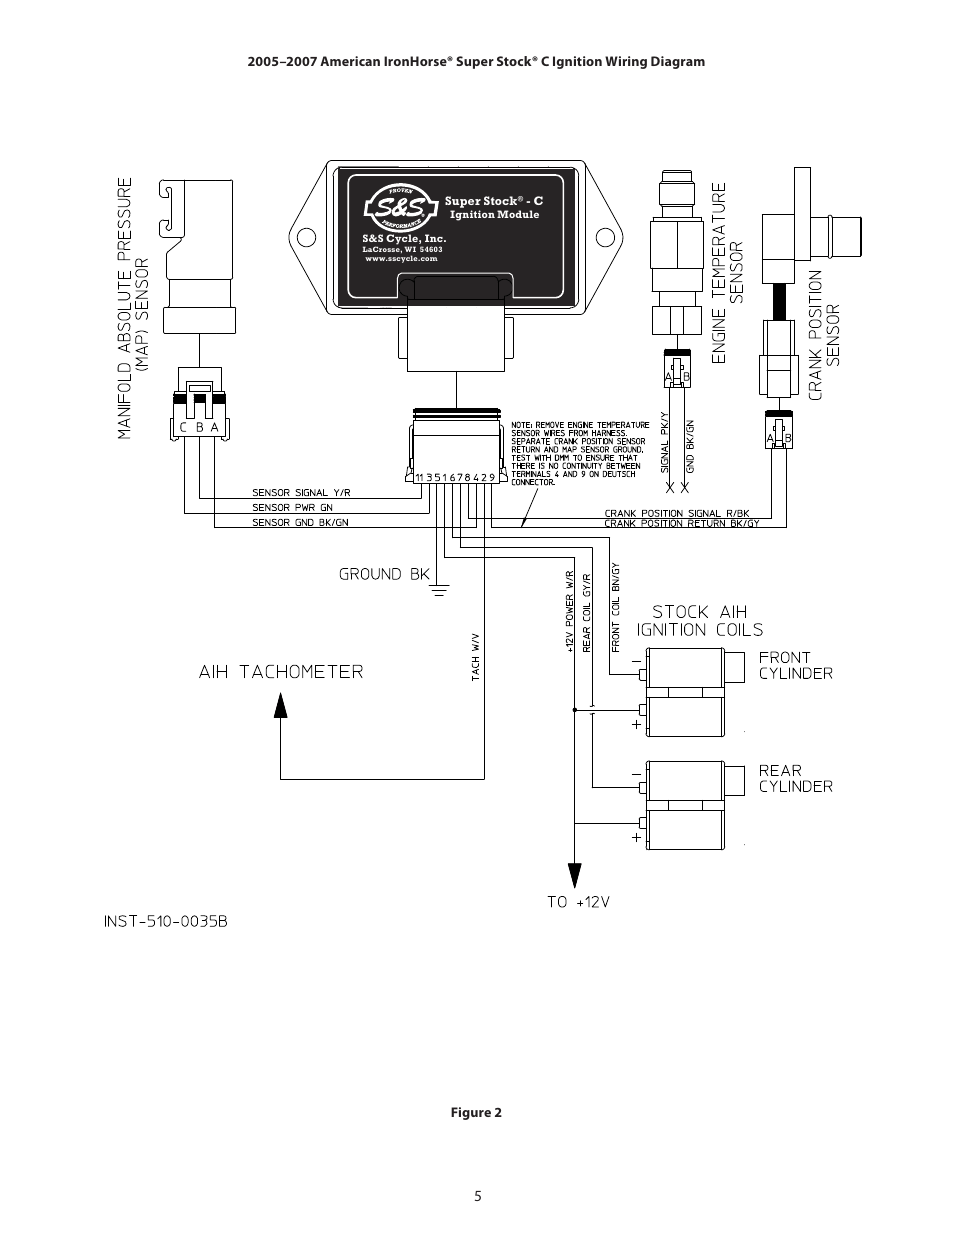 simple motorcycle wiring harness diagram wiring libraryiron horse motorcycle wiring diagram for example electrical wiring png 954x1235 simple motorcycle wiring diagram